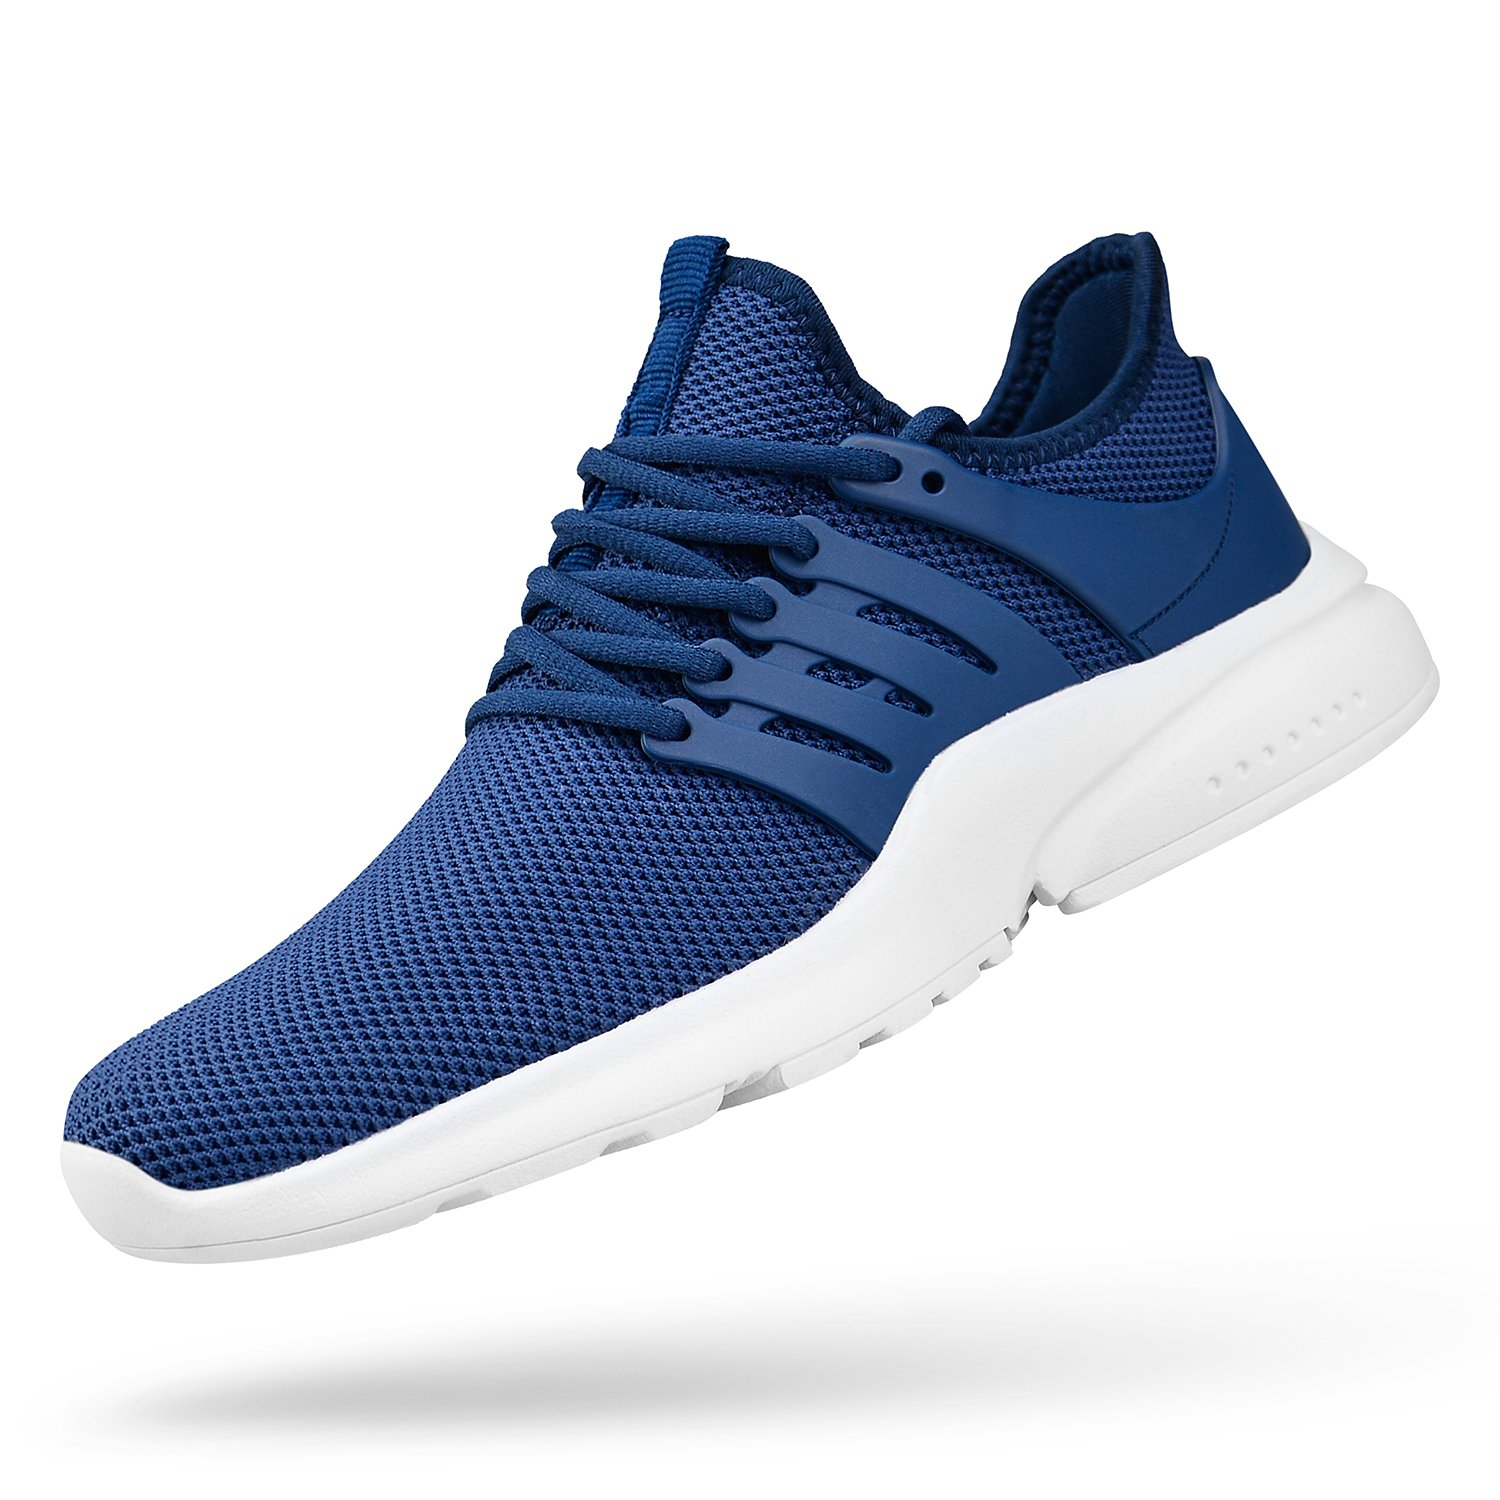 QANSI Mens Sneakers Mesh Breathable Lightweight Sports Running Shoes Fashion Gym Summer 8.5 D(M) US Blue/White